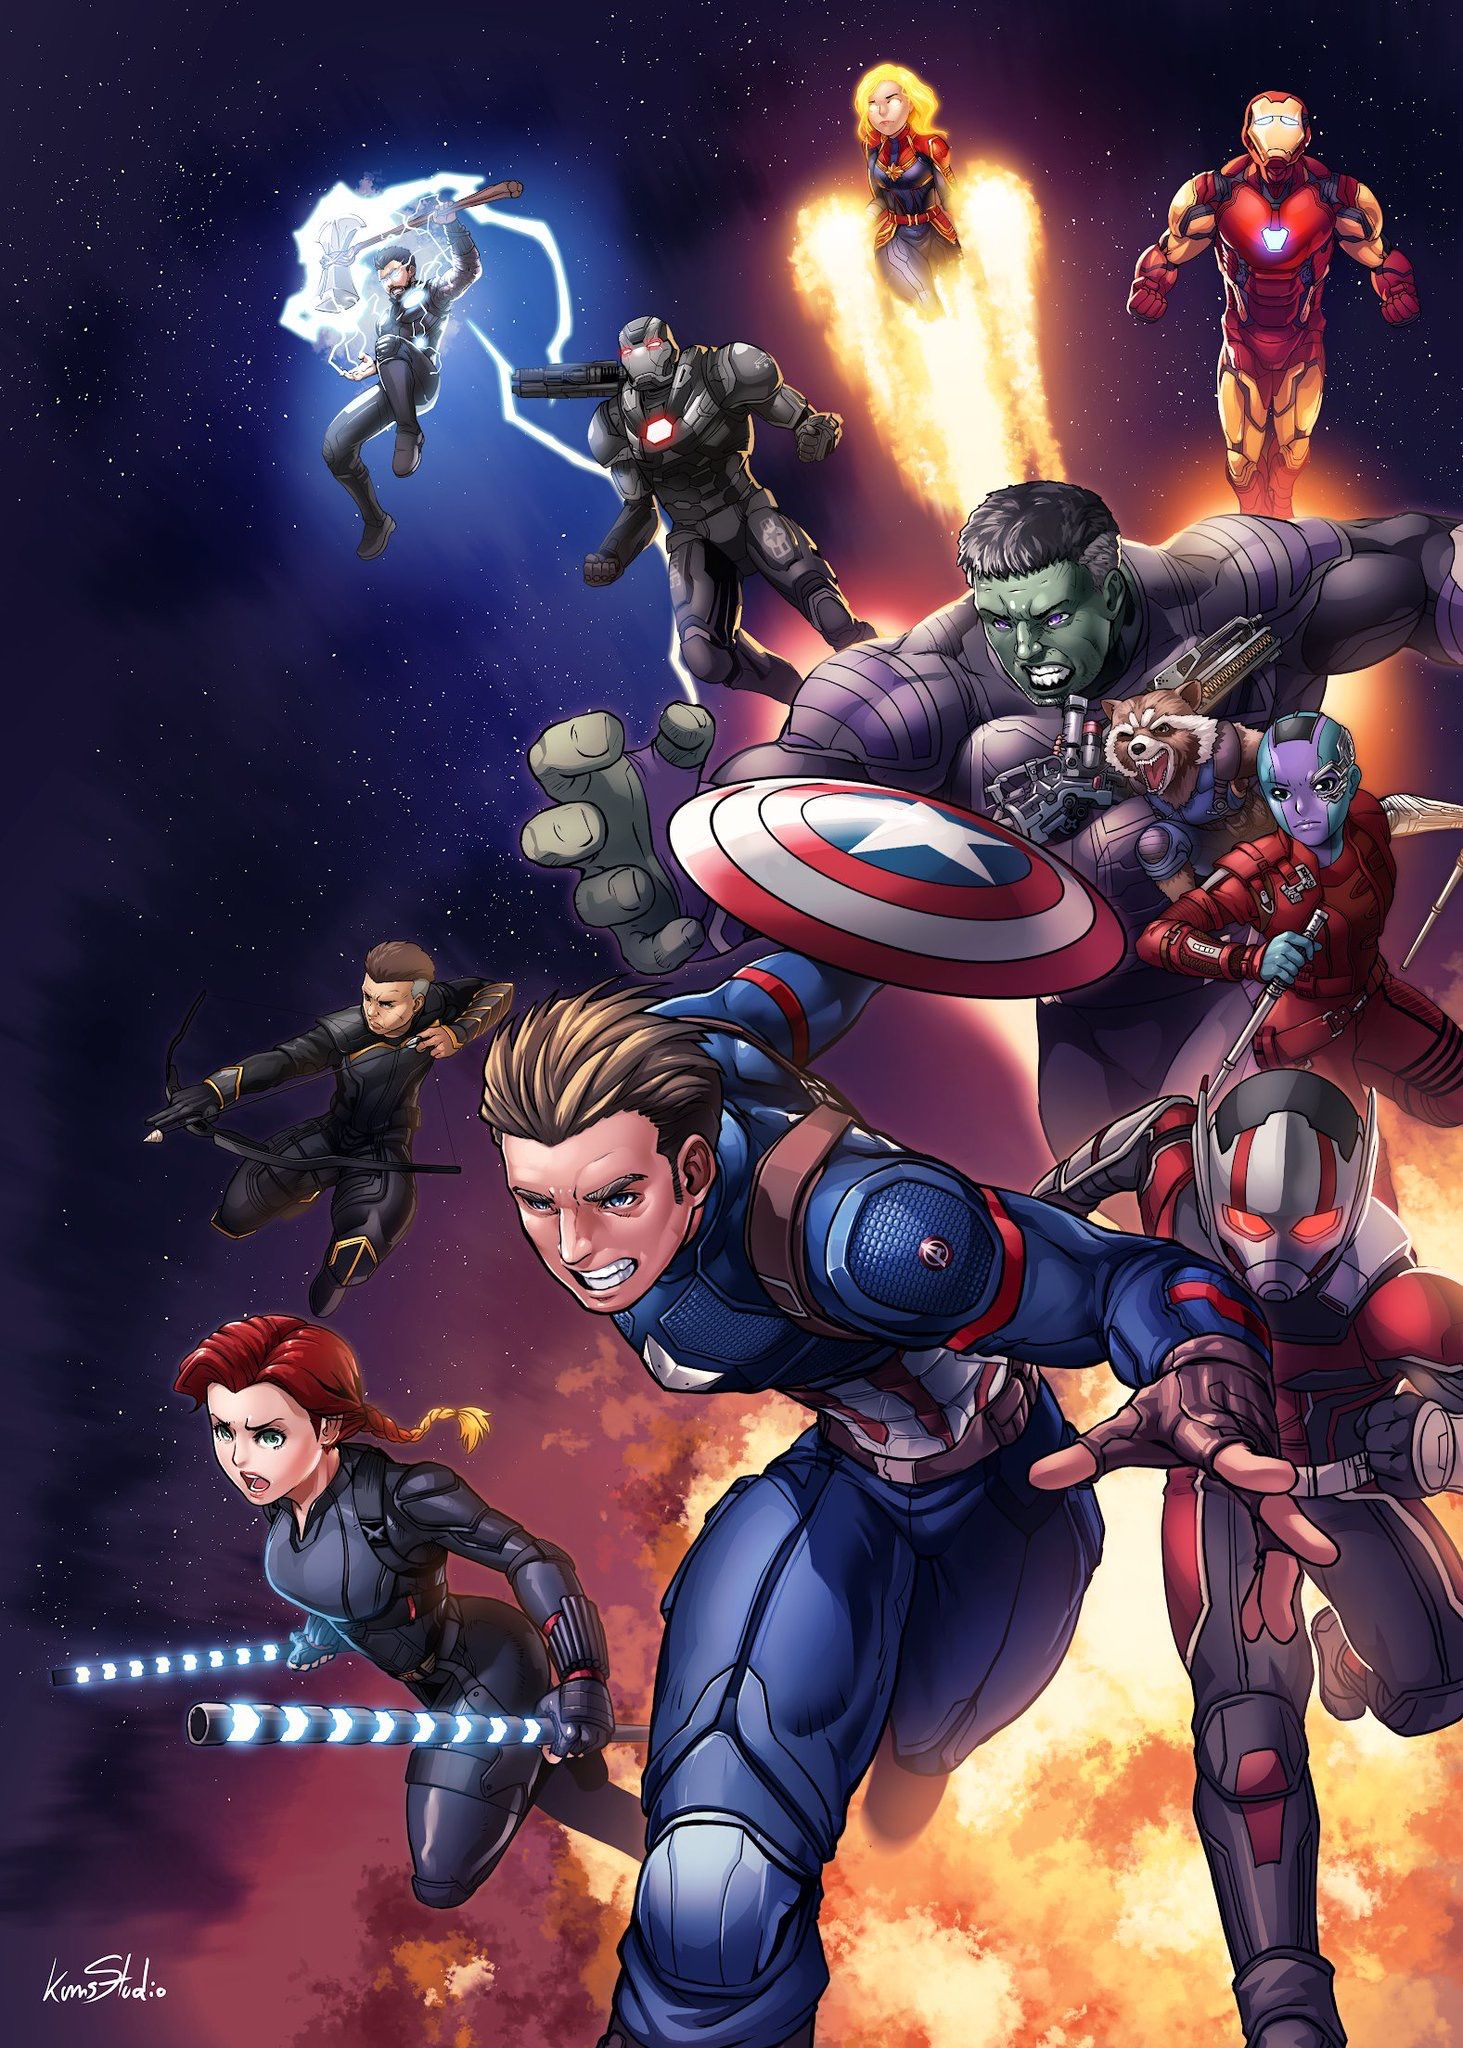 Avengers End Game Art By Kumpol Saeeow Marvel Avengers Comics Avengers Comics Marvel Avengers Funny